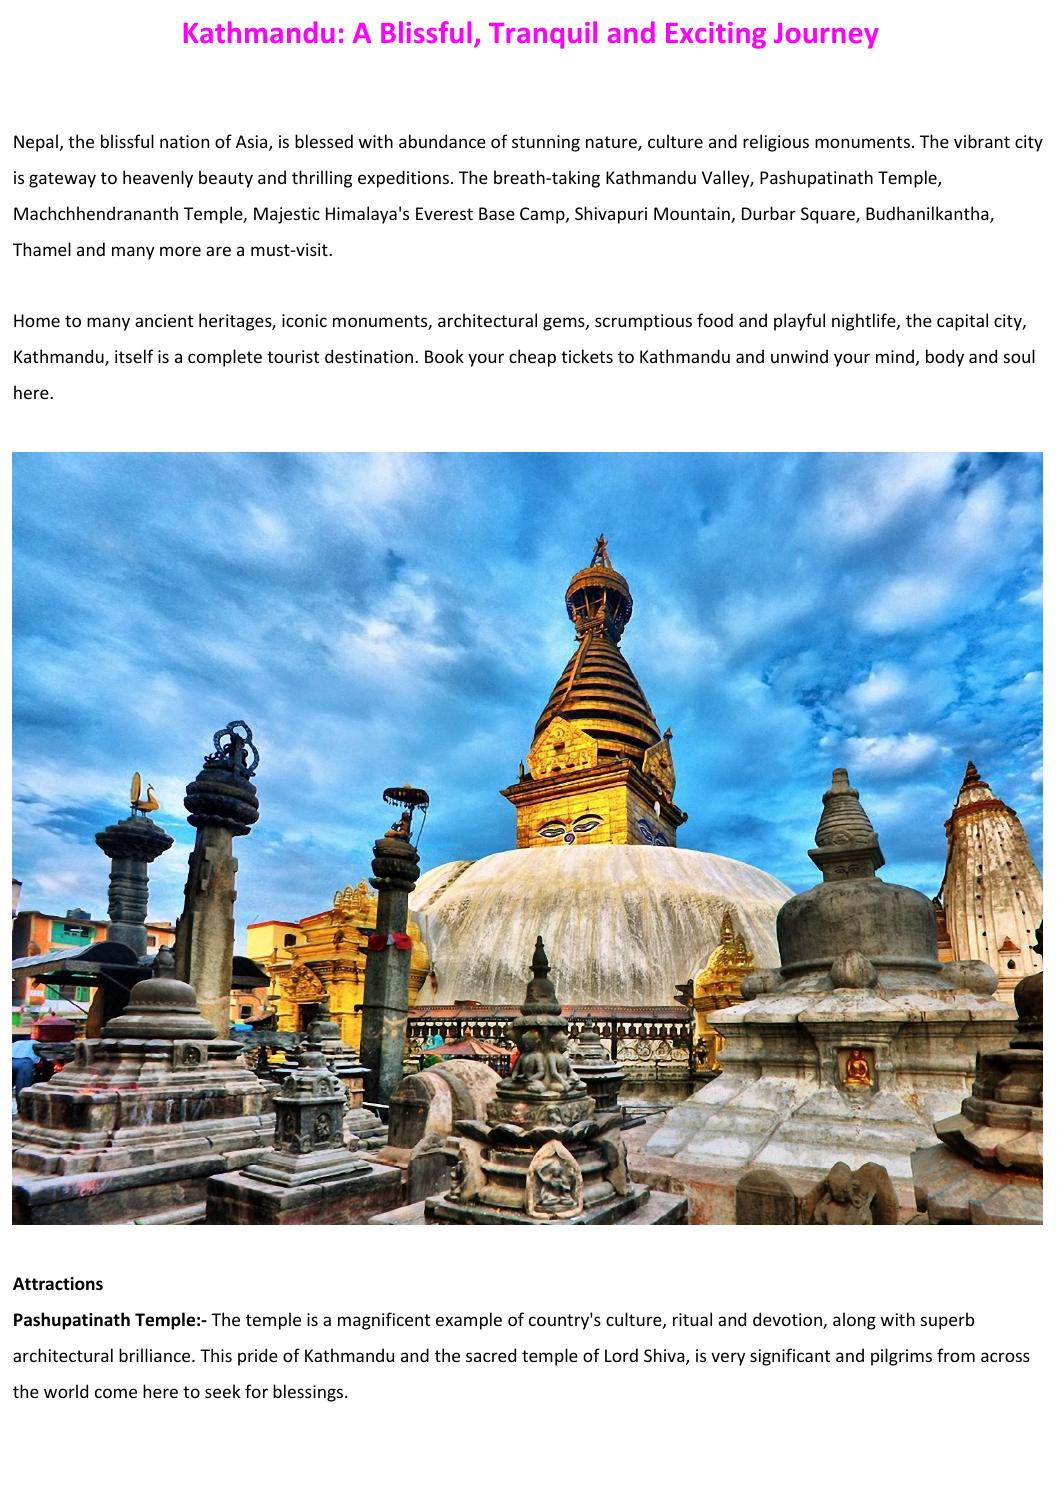 Kathmandu: A Blissful, Tranquil and Exciting Journey by